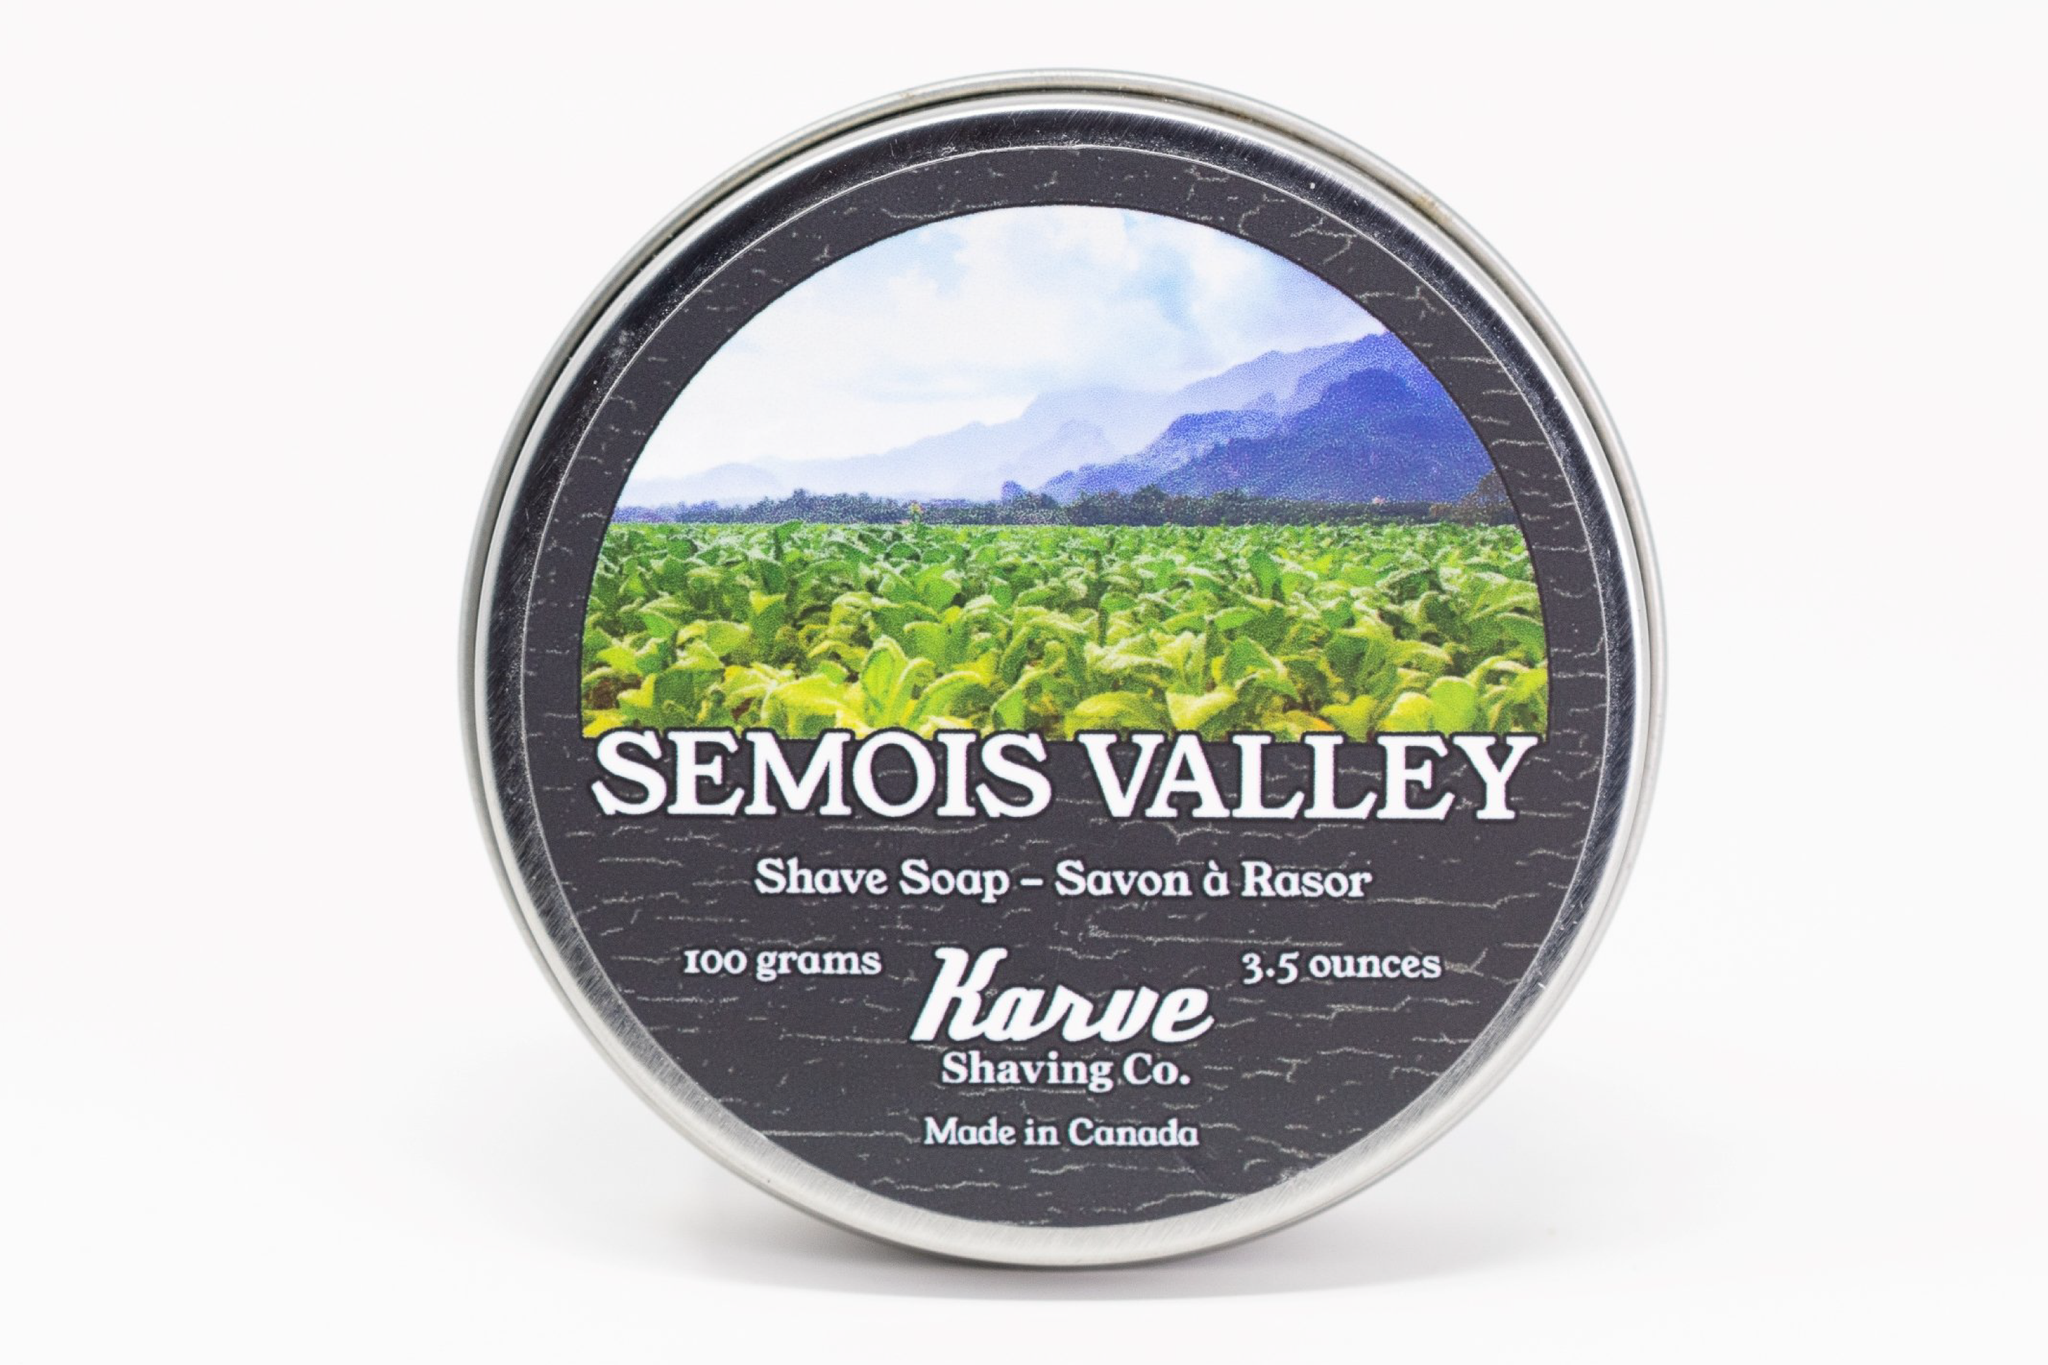 Semois Valley Shave Soap